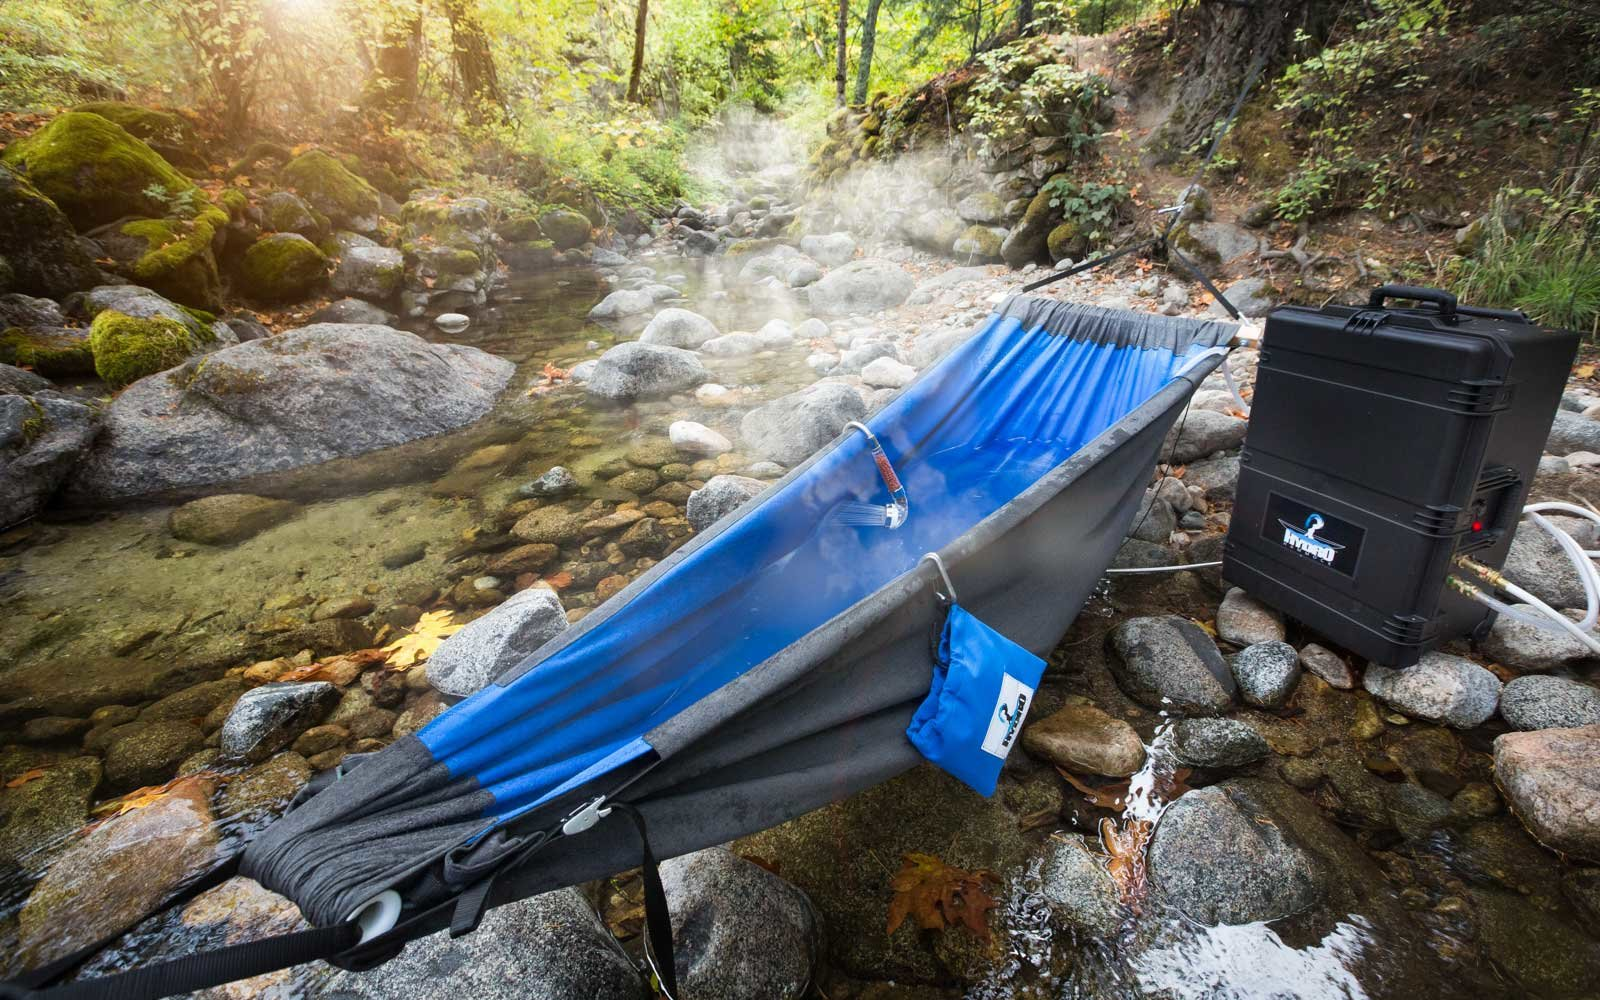 You Can Make Your Own Private Hot Tub In Minutes With This